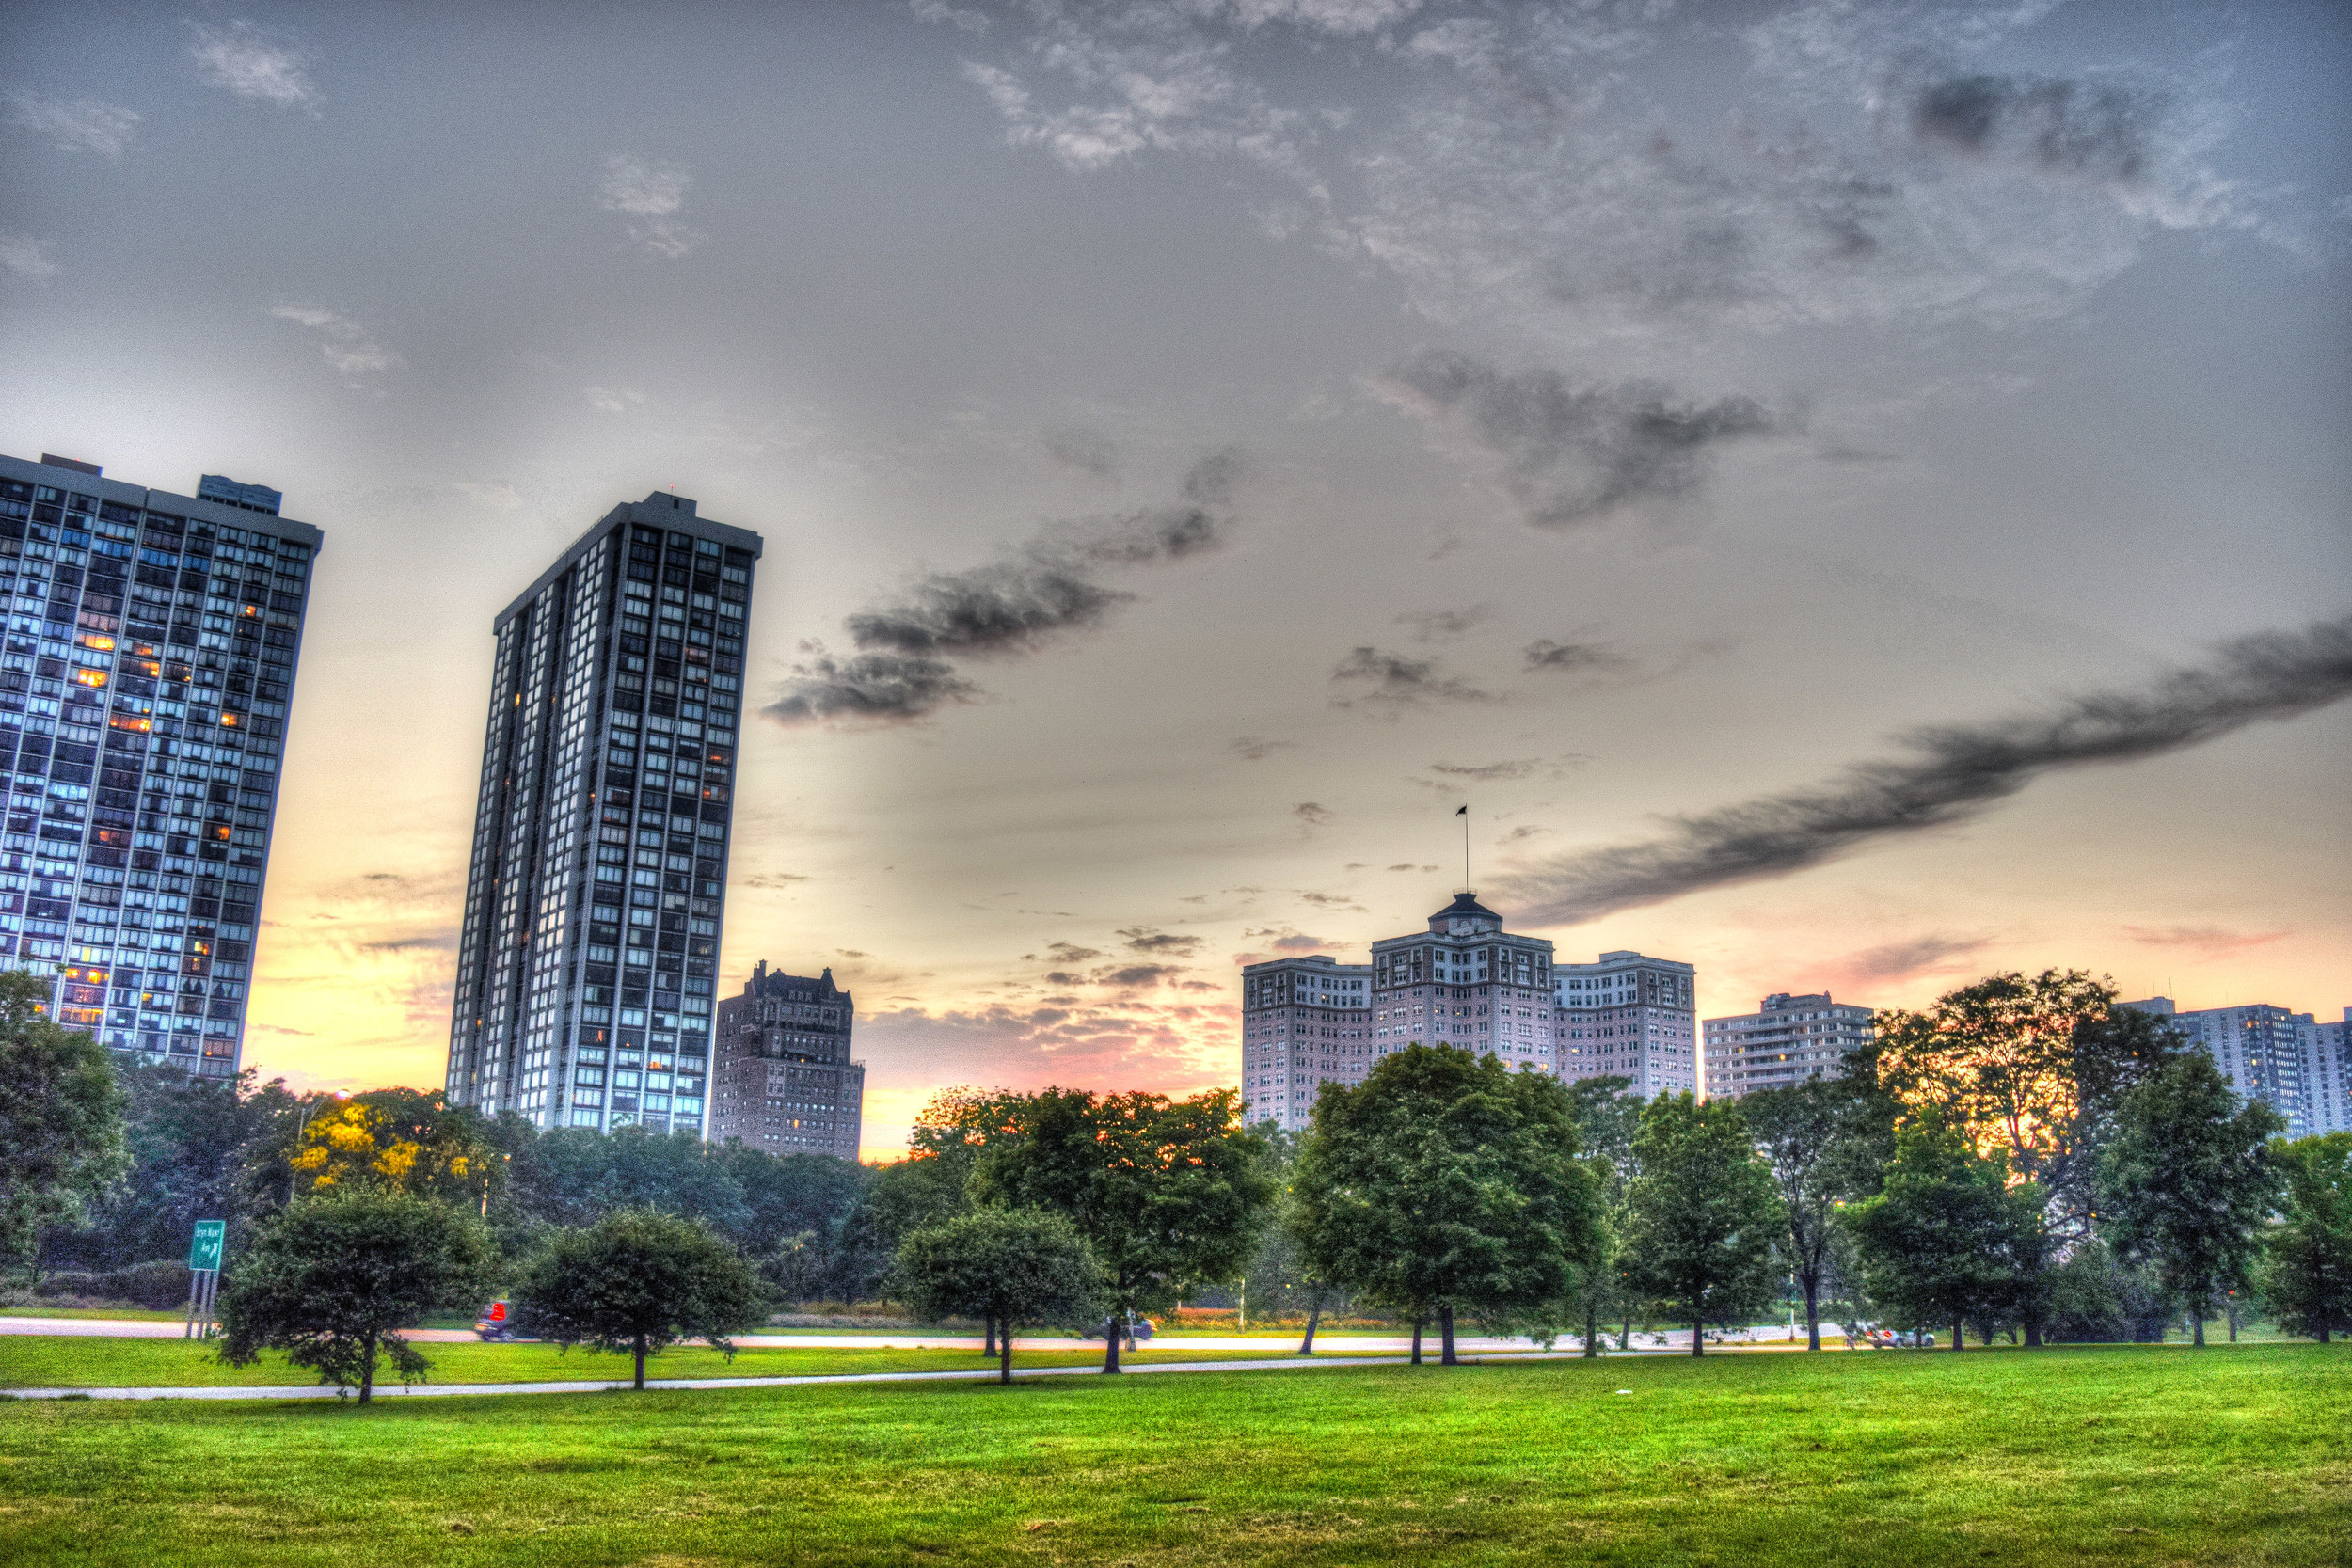 edgewater foster sunset color consolate chicago building classic architecture sharp strong.jpg